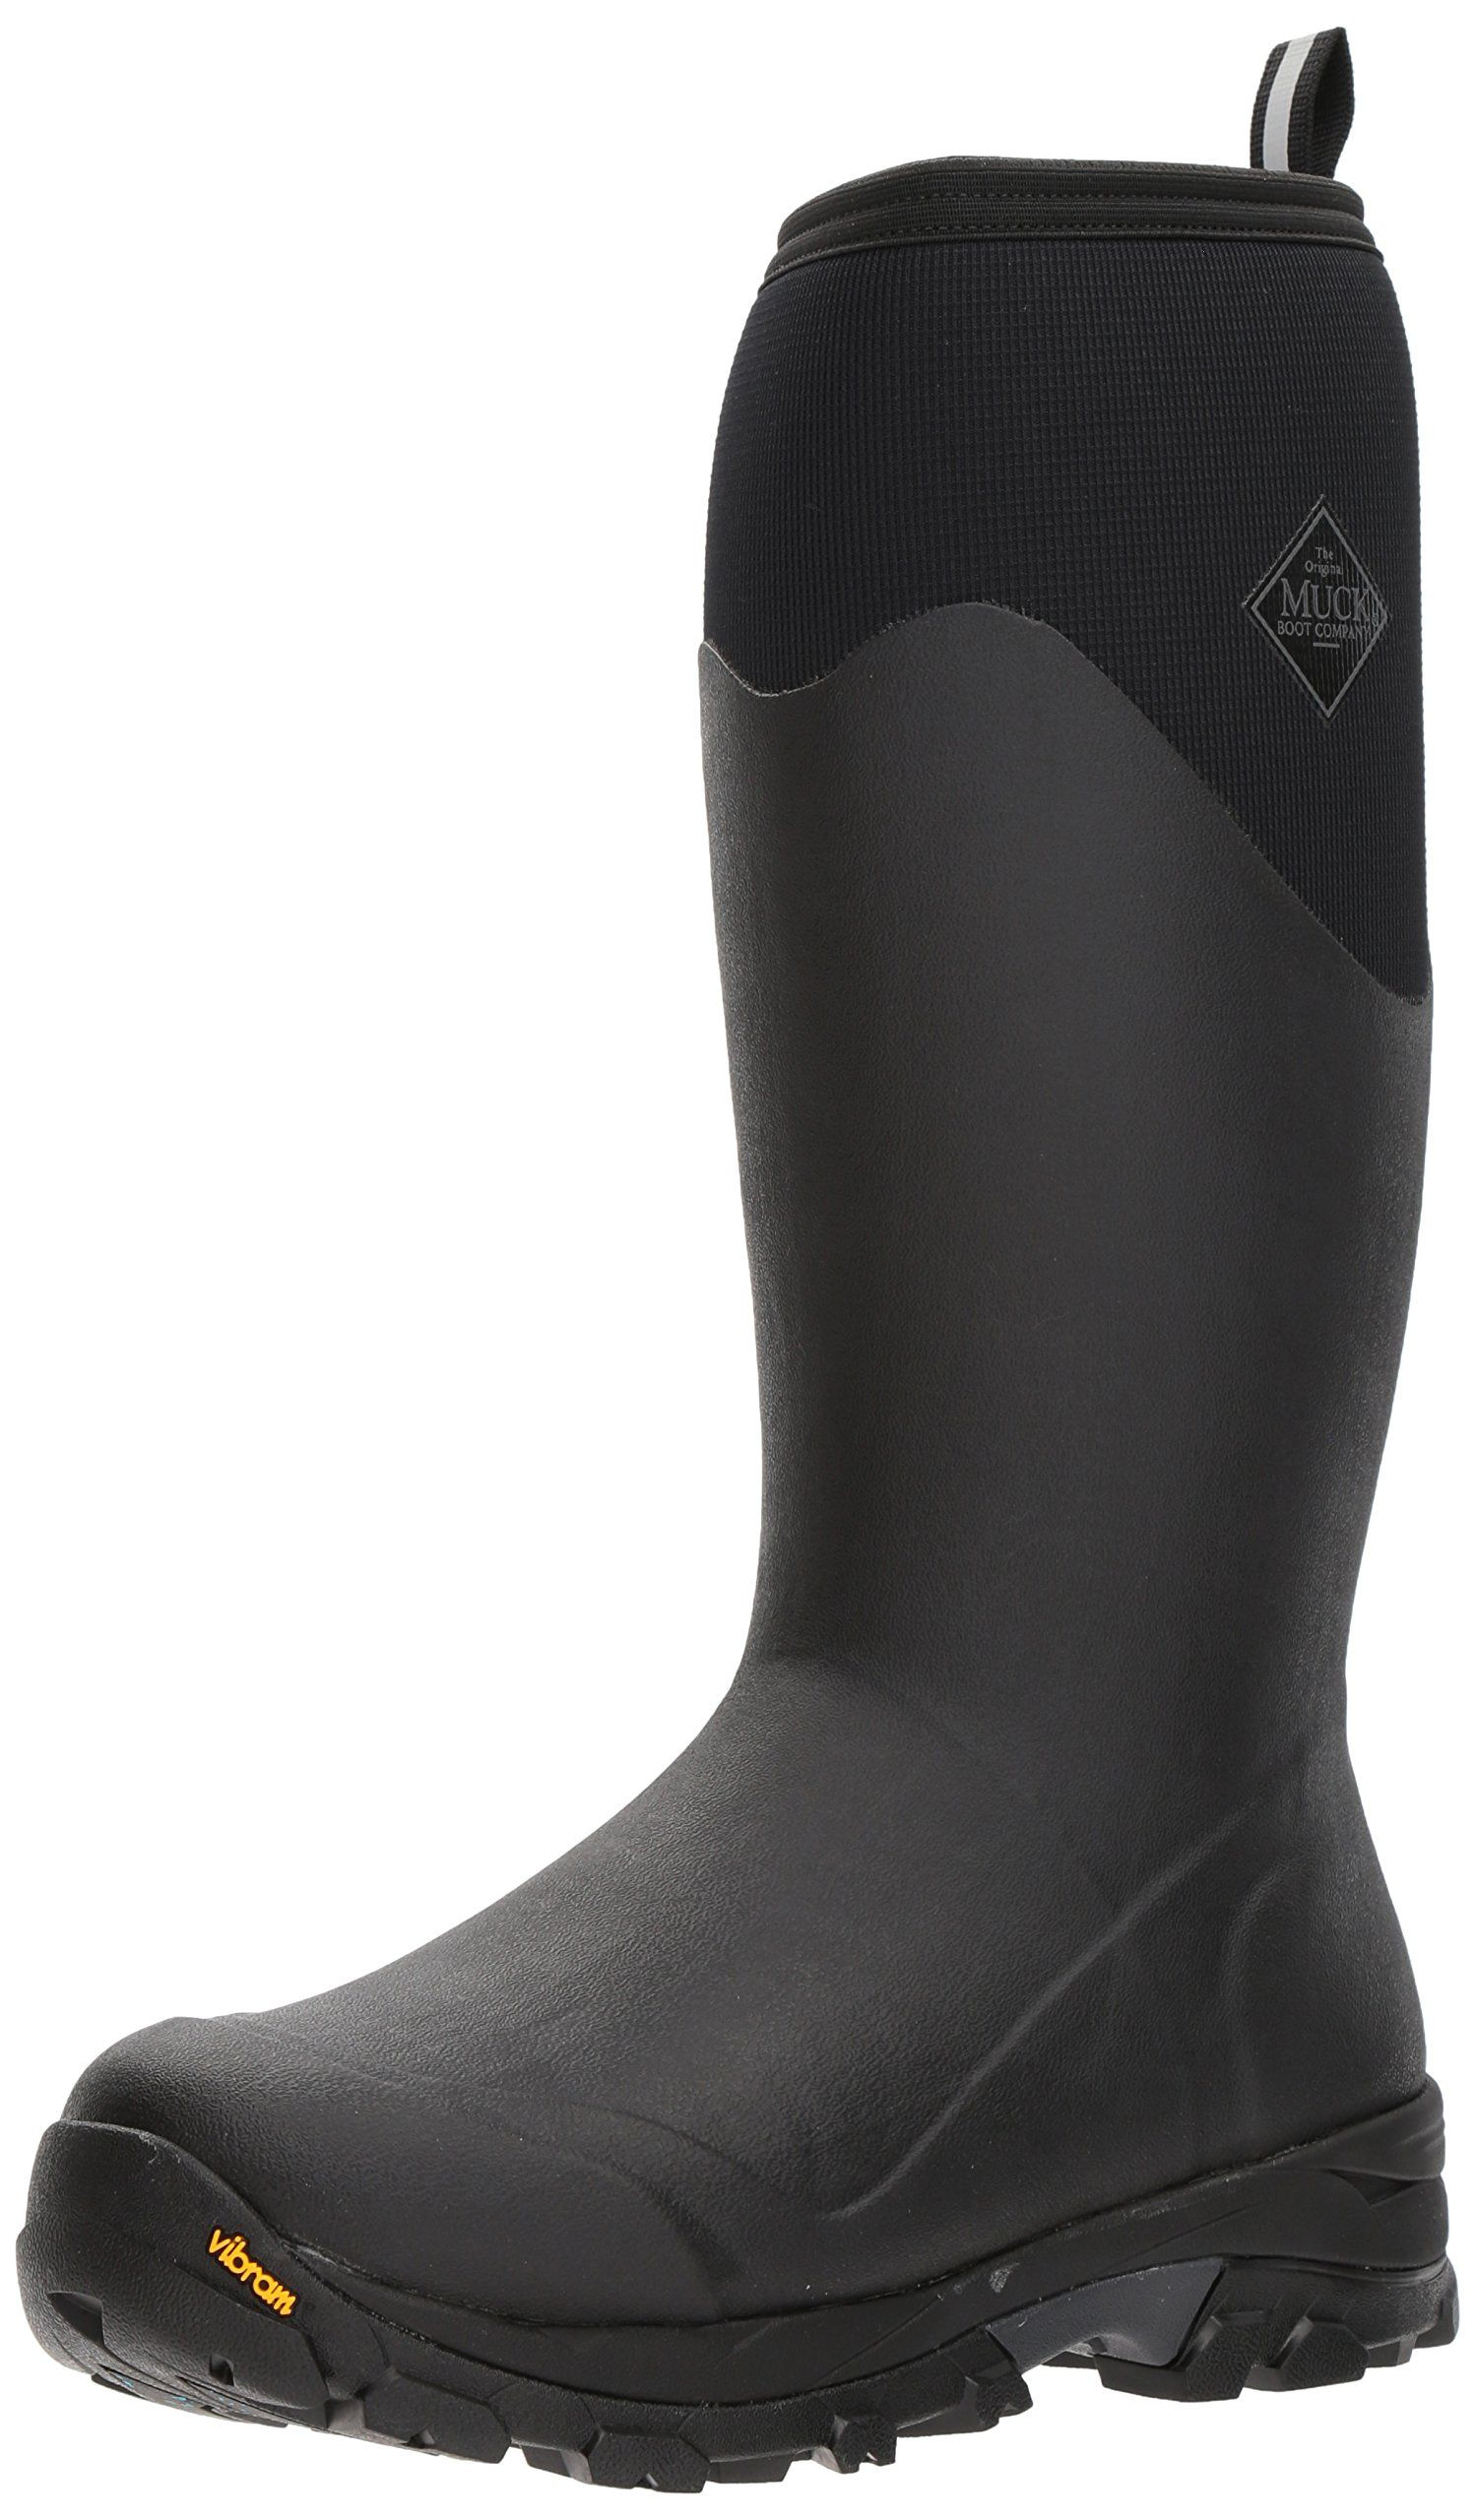 Muck Boots Woody Arctic Ice Extreme Conditions Men's